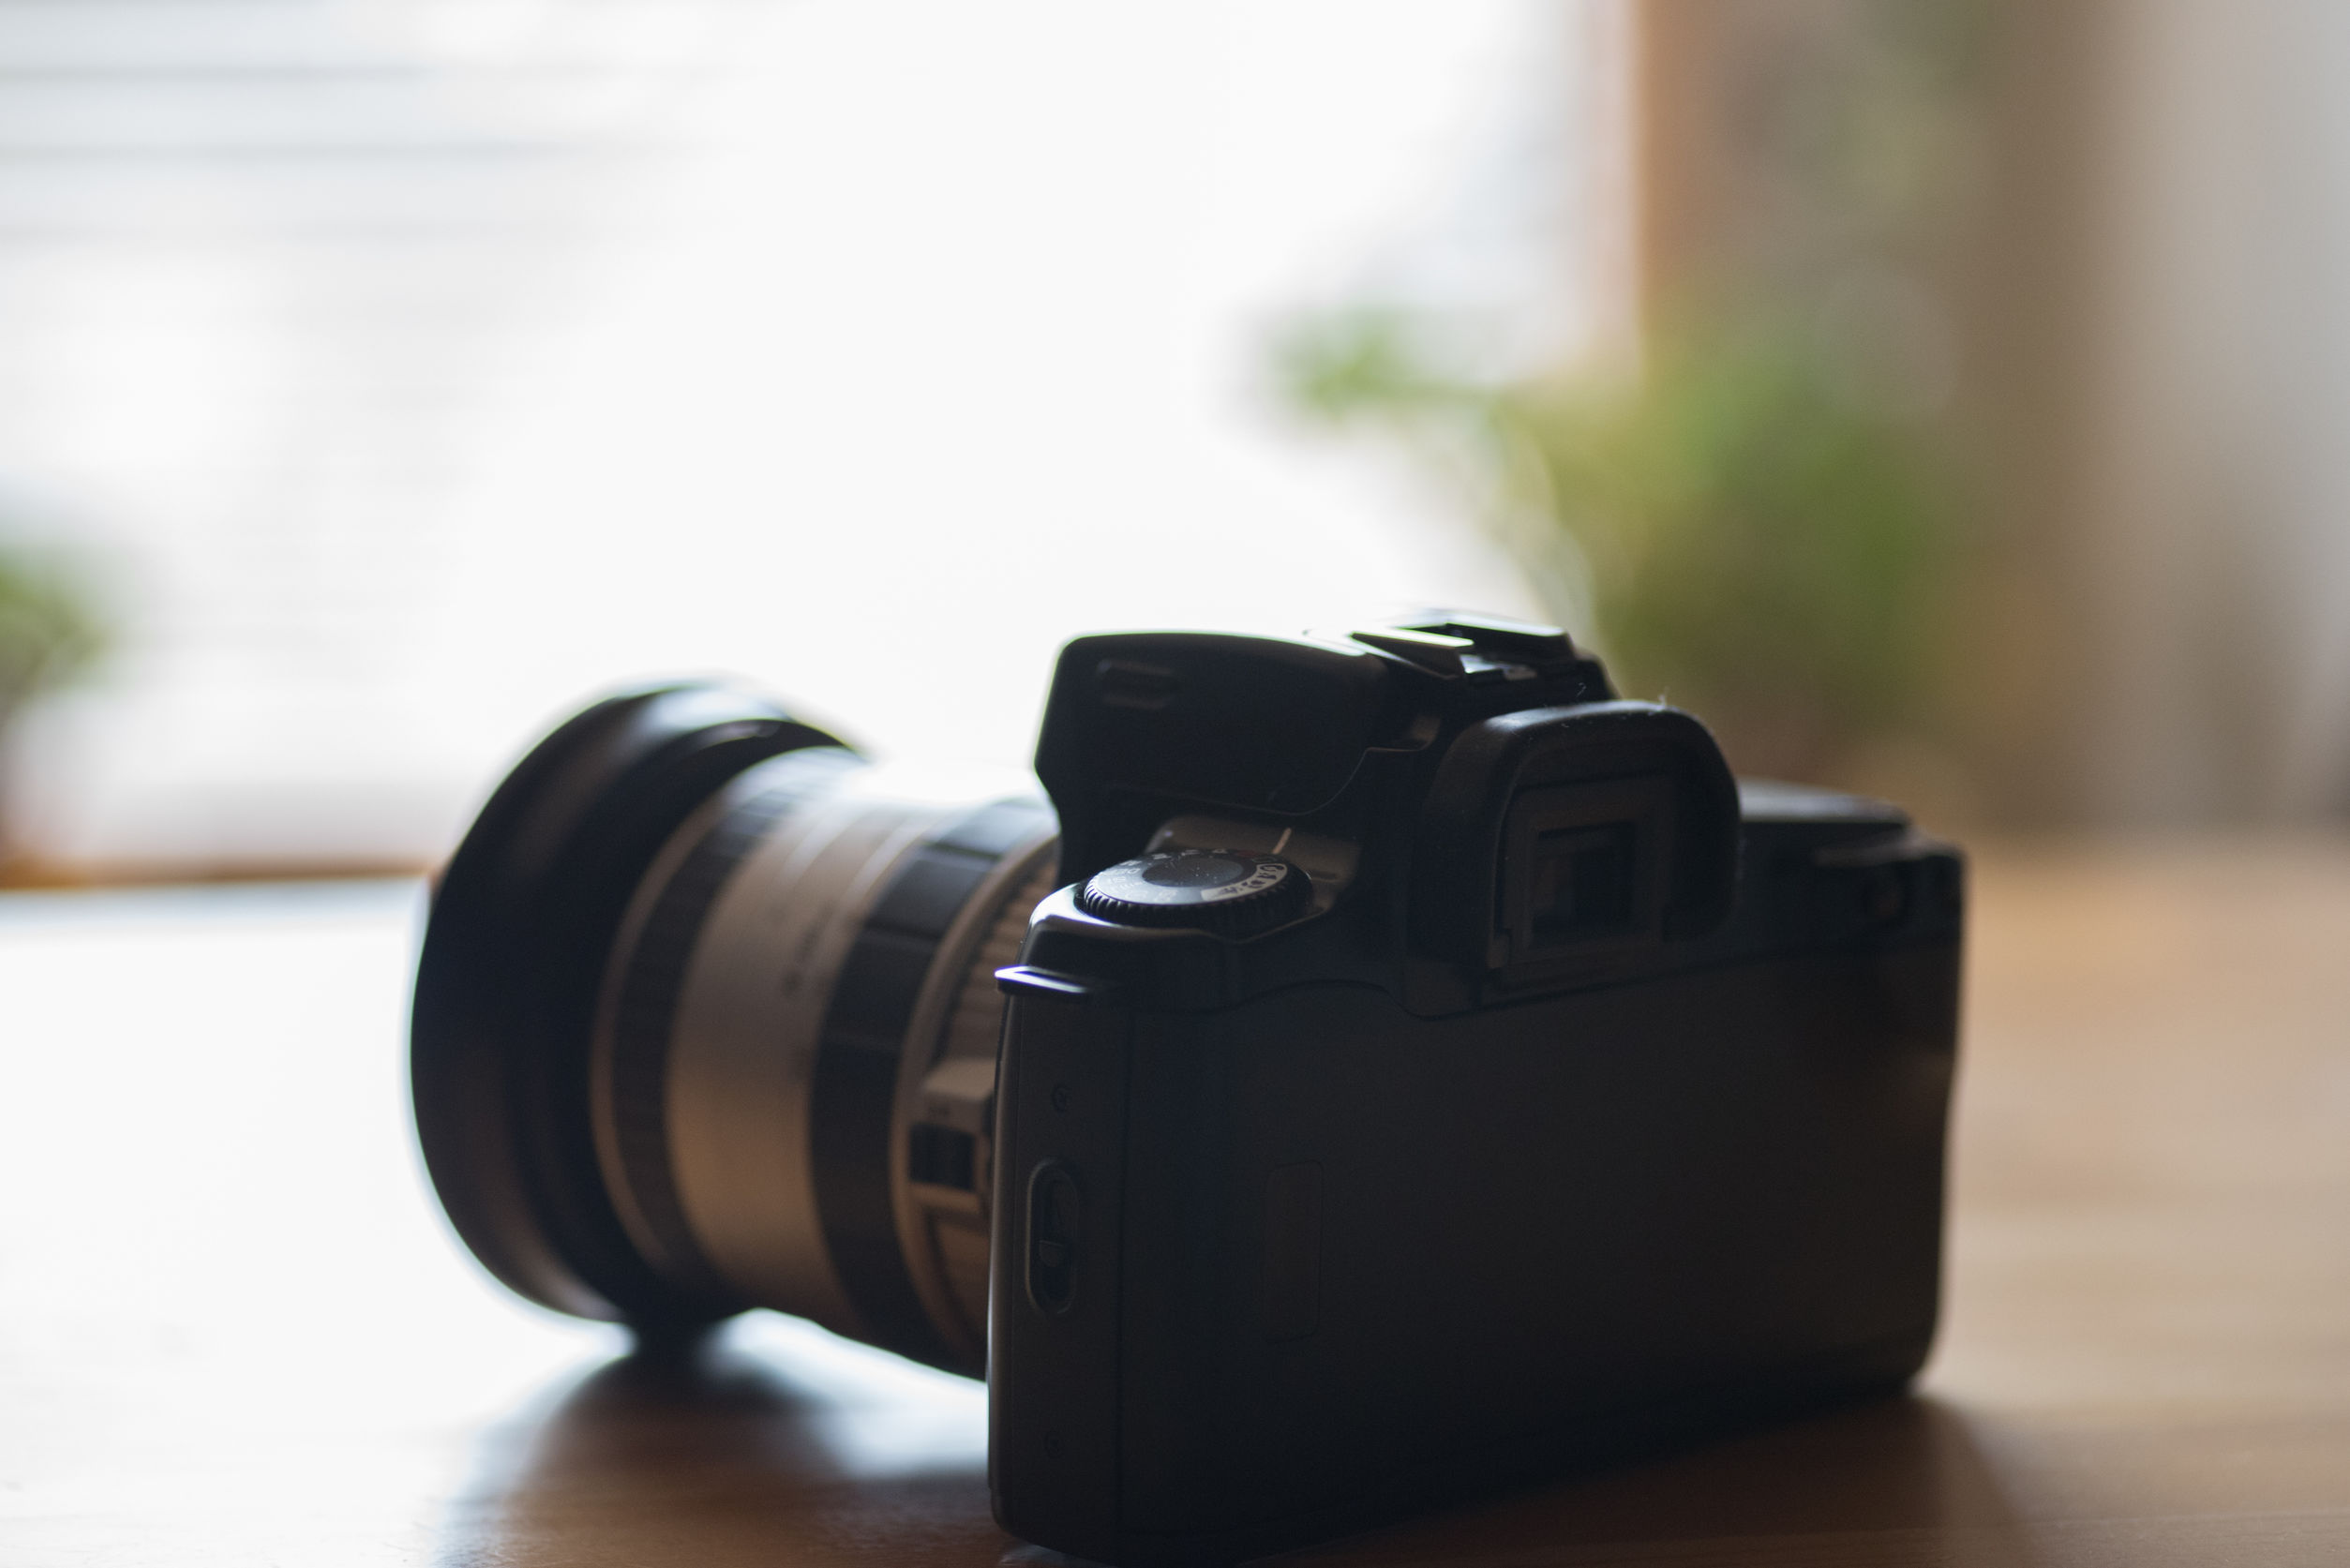 Best DSLR Camera 2020: The ultimate guide